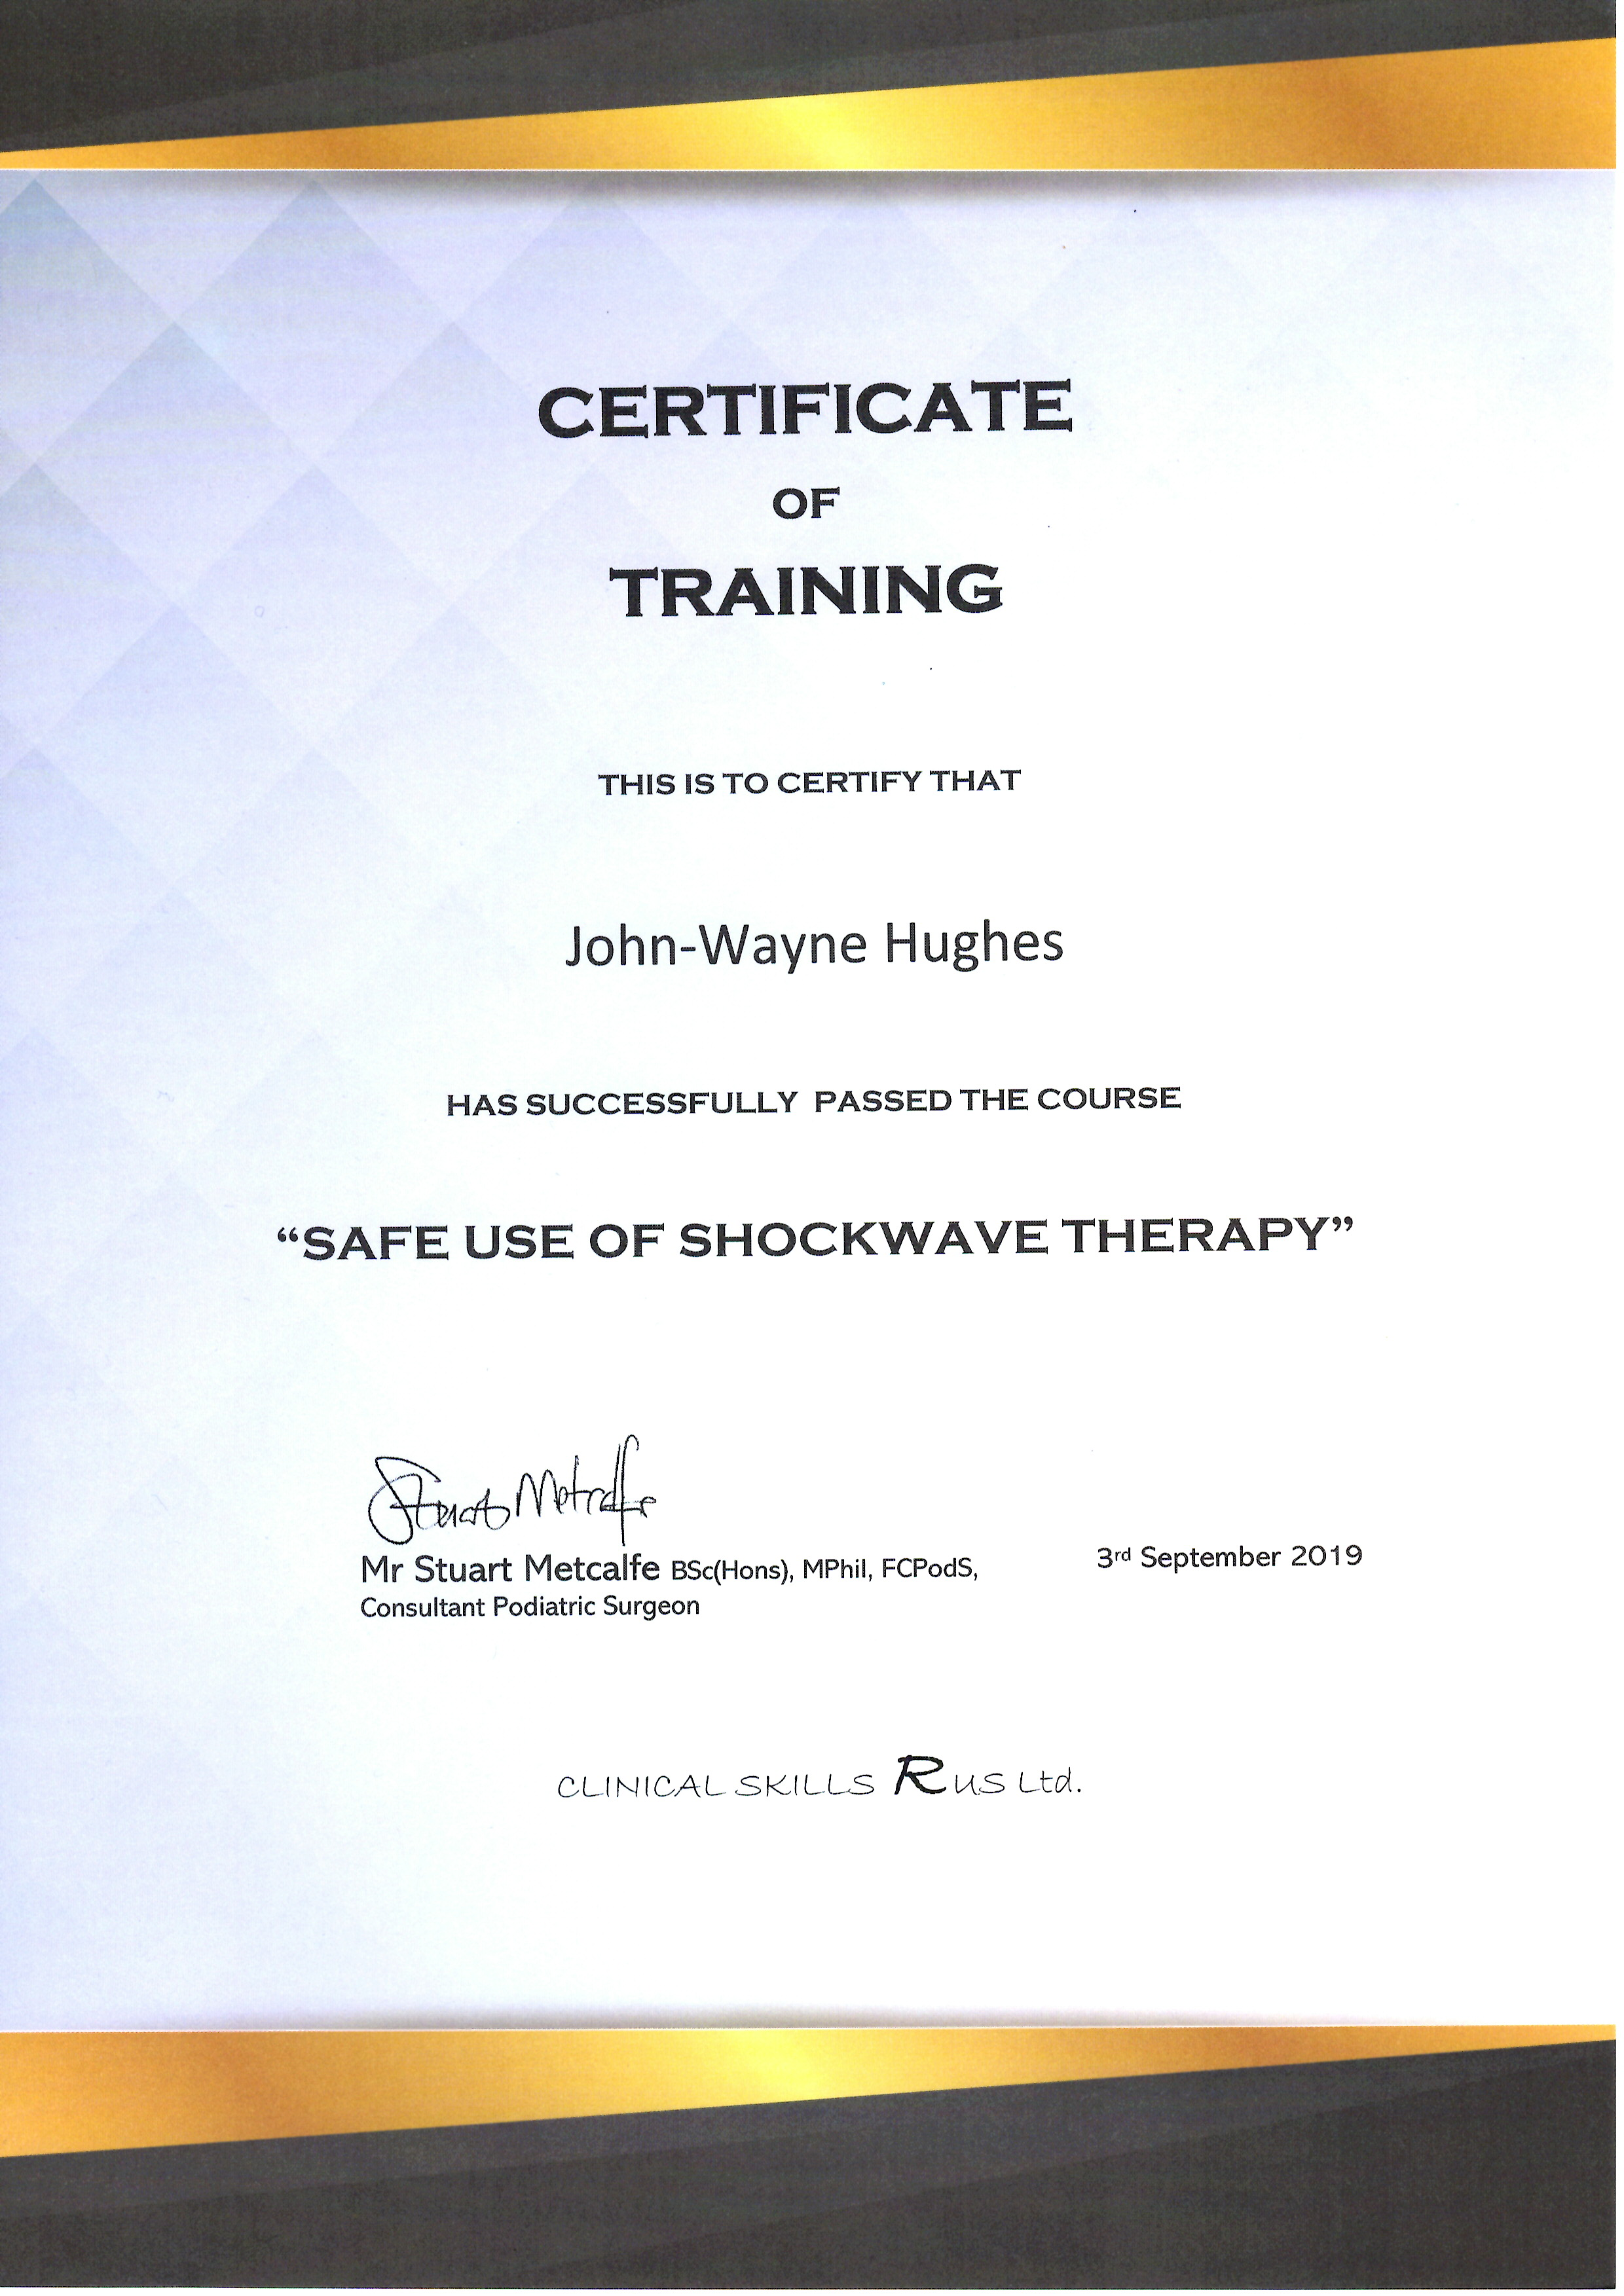 Image-of-certificate-of-training-for-the-safe-use-of-shockwave-therapy